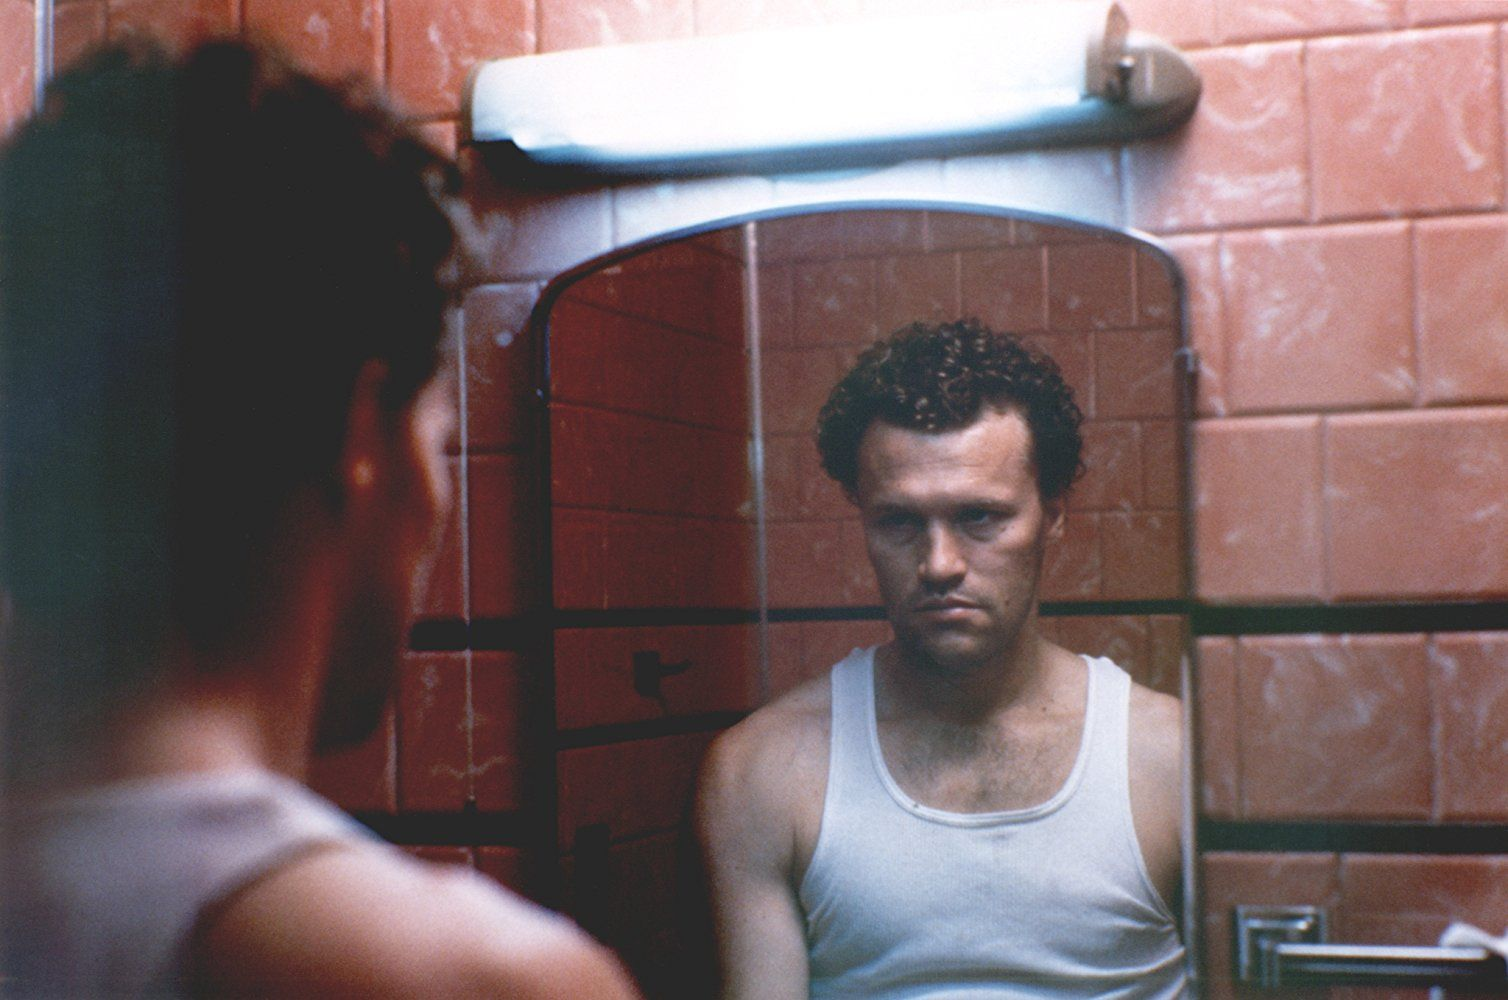 Michael Rooker in Henry: Portrait of a Serial Killer looking at himself in the mirror